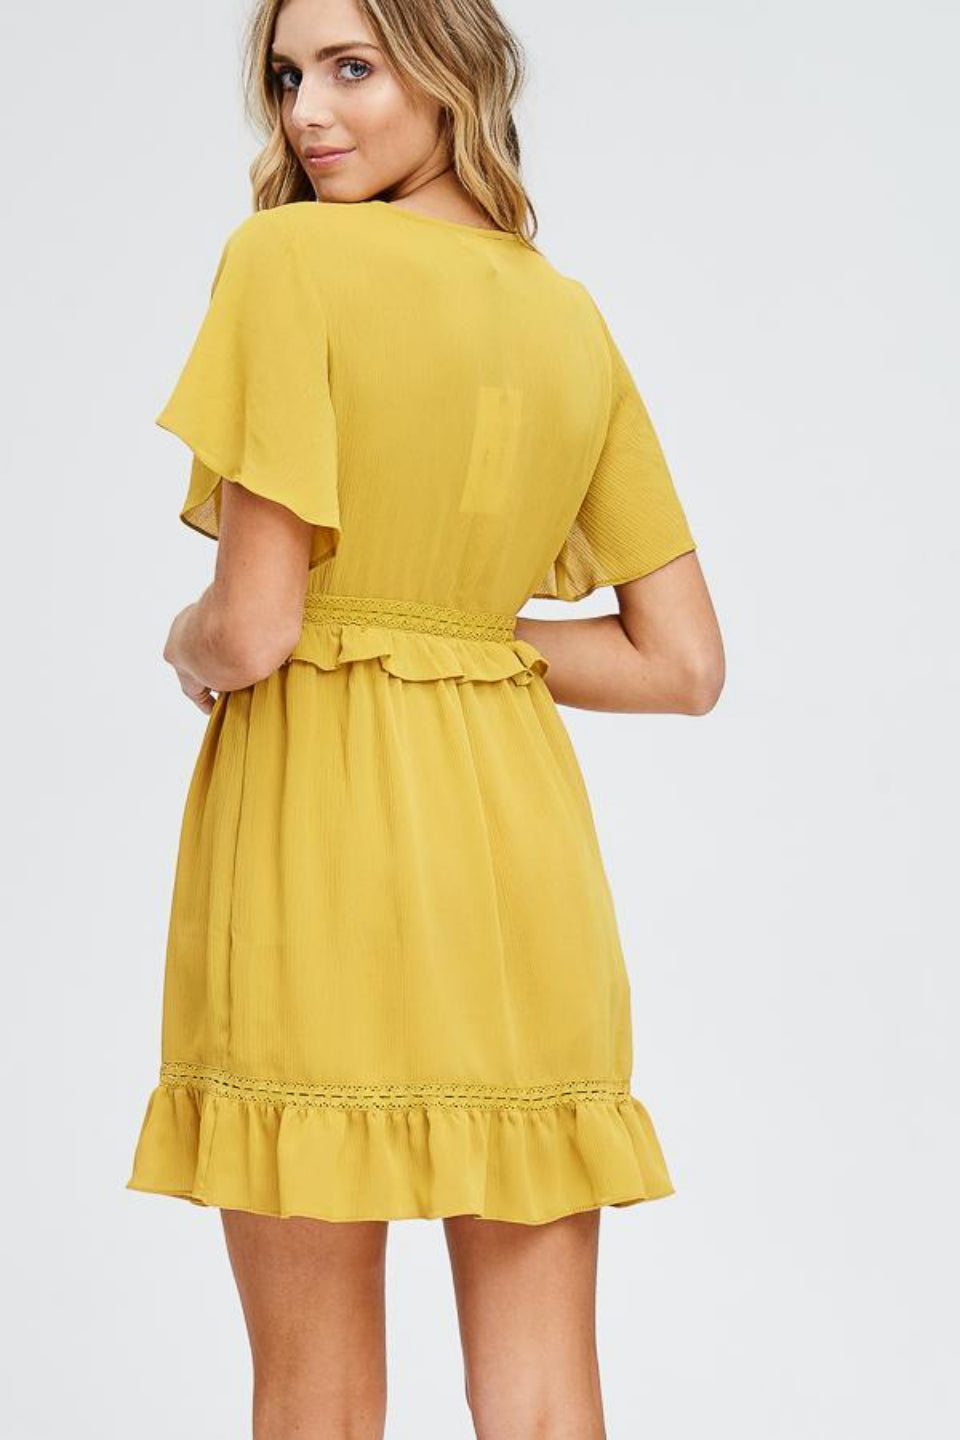 Venus - Yellow Ruffle Dress